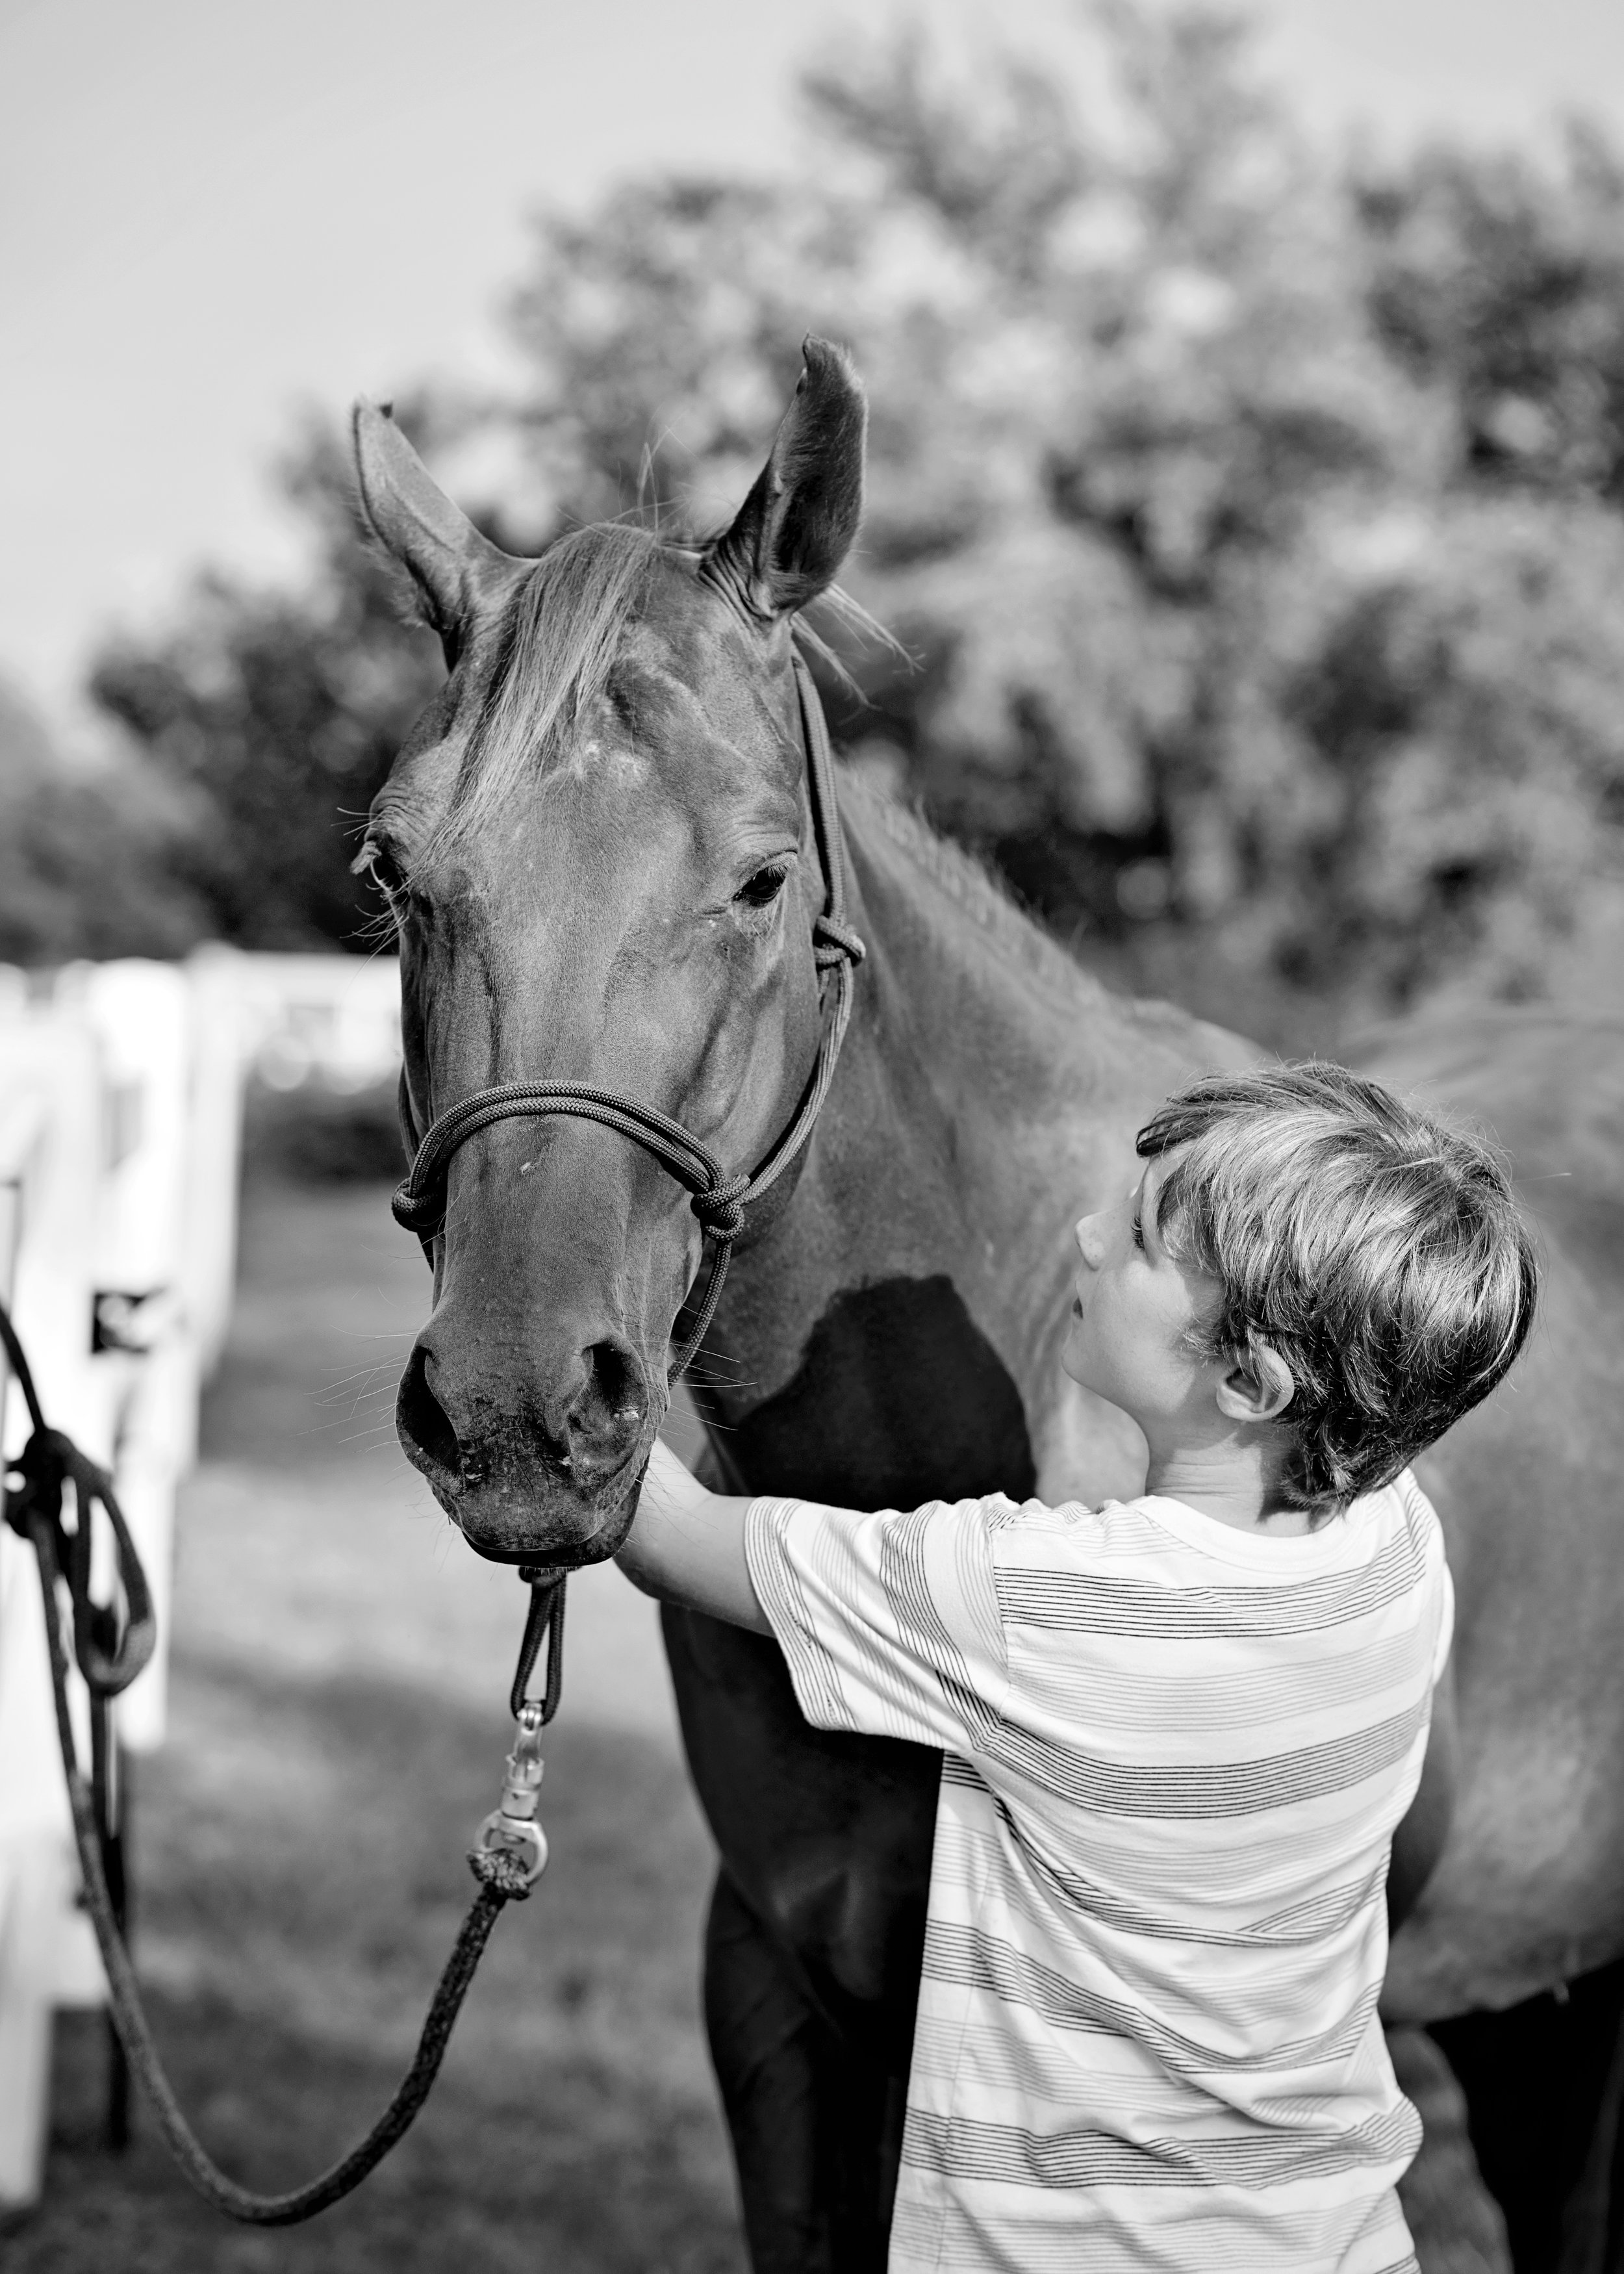 What is Equine Assisted Psychotherapy (EAP)?In EAP you have horses. The horses could care less what people say or what they don't say.  They use their superpower, reading body language. I tell my young clients its real life Spidey sense, or Horsey sense.How do we as human tap into that super power? It takes a team, of client, therapist, and horses. The trained therapist and certified EAP horse professional observe your interactions with the horse.  The horse cannot lie.  Its reactions are 100% honest.  The you'll be instructed to do a task with the horse for 20-30 minutes.   After we talk about any observations we had from the interaction.  At that point it's up to you to fill in the why.  This is when EAP steps away from traditional therapy.  You just had a real life experience with a horse. It wasn't a retelling, or reenactment.    You get to the truth faster, meaningfully, and with longer lasting impact with EAP.                                                -